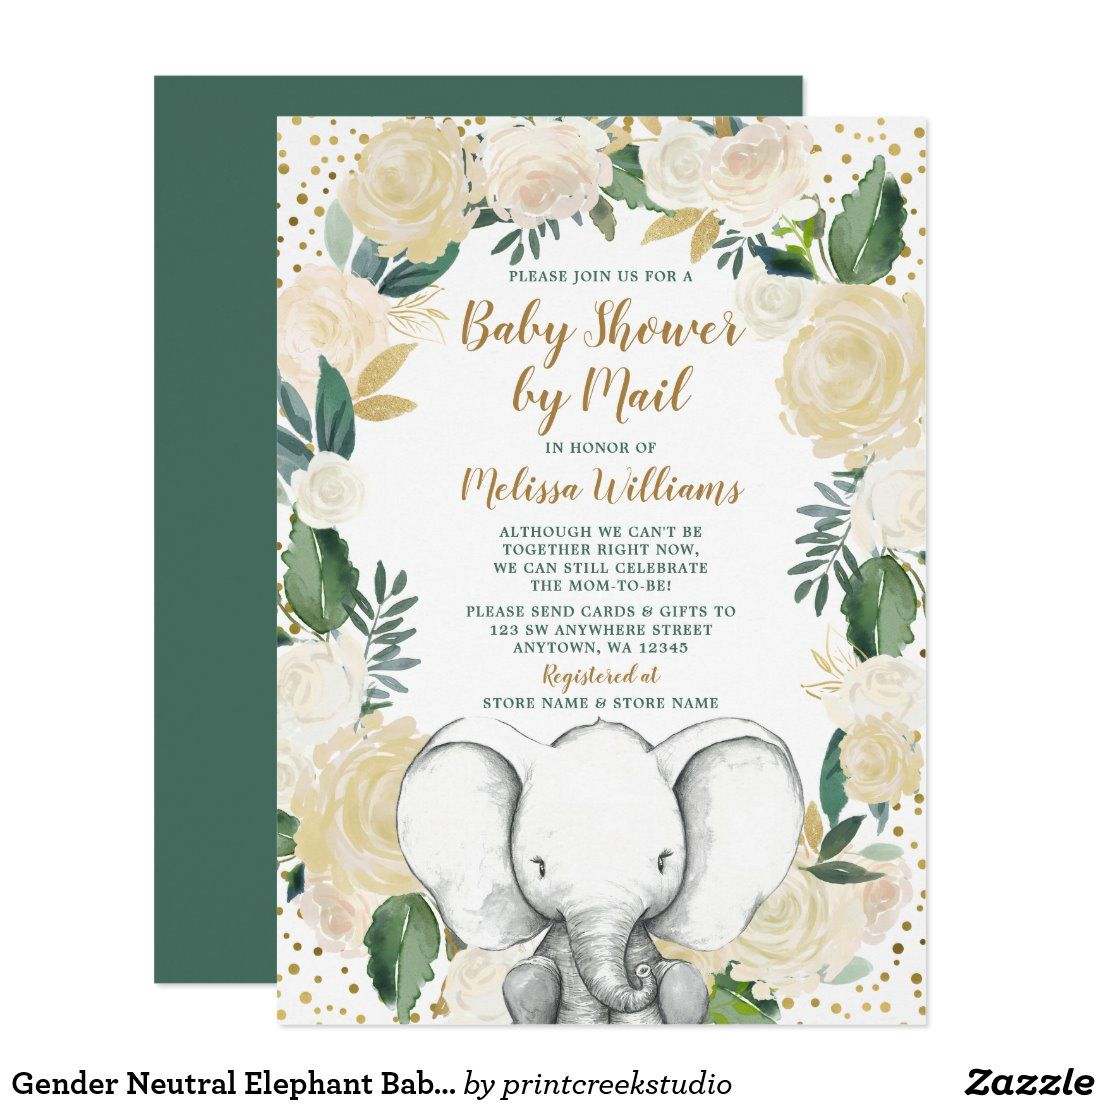 Gender Neutral Elephant Baby Shower by Mail Invitation